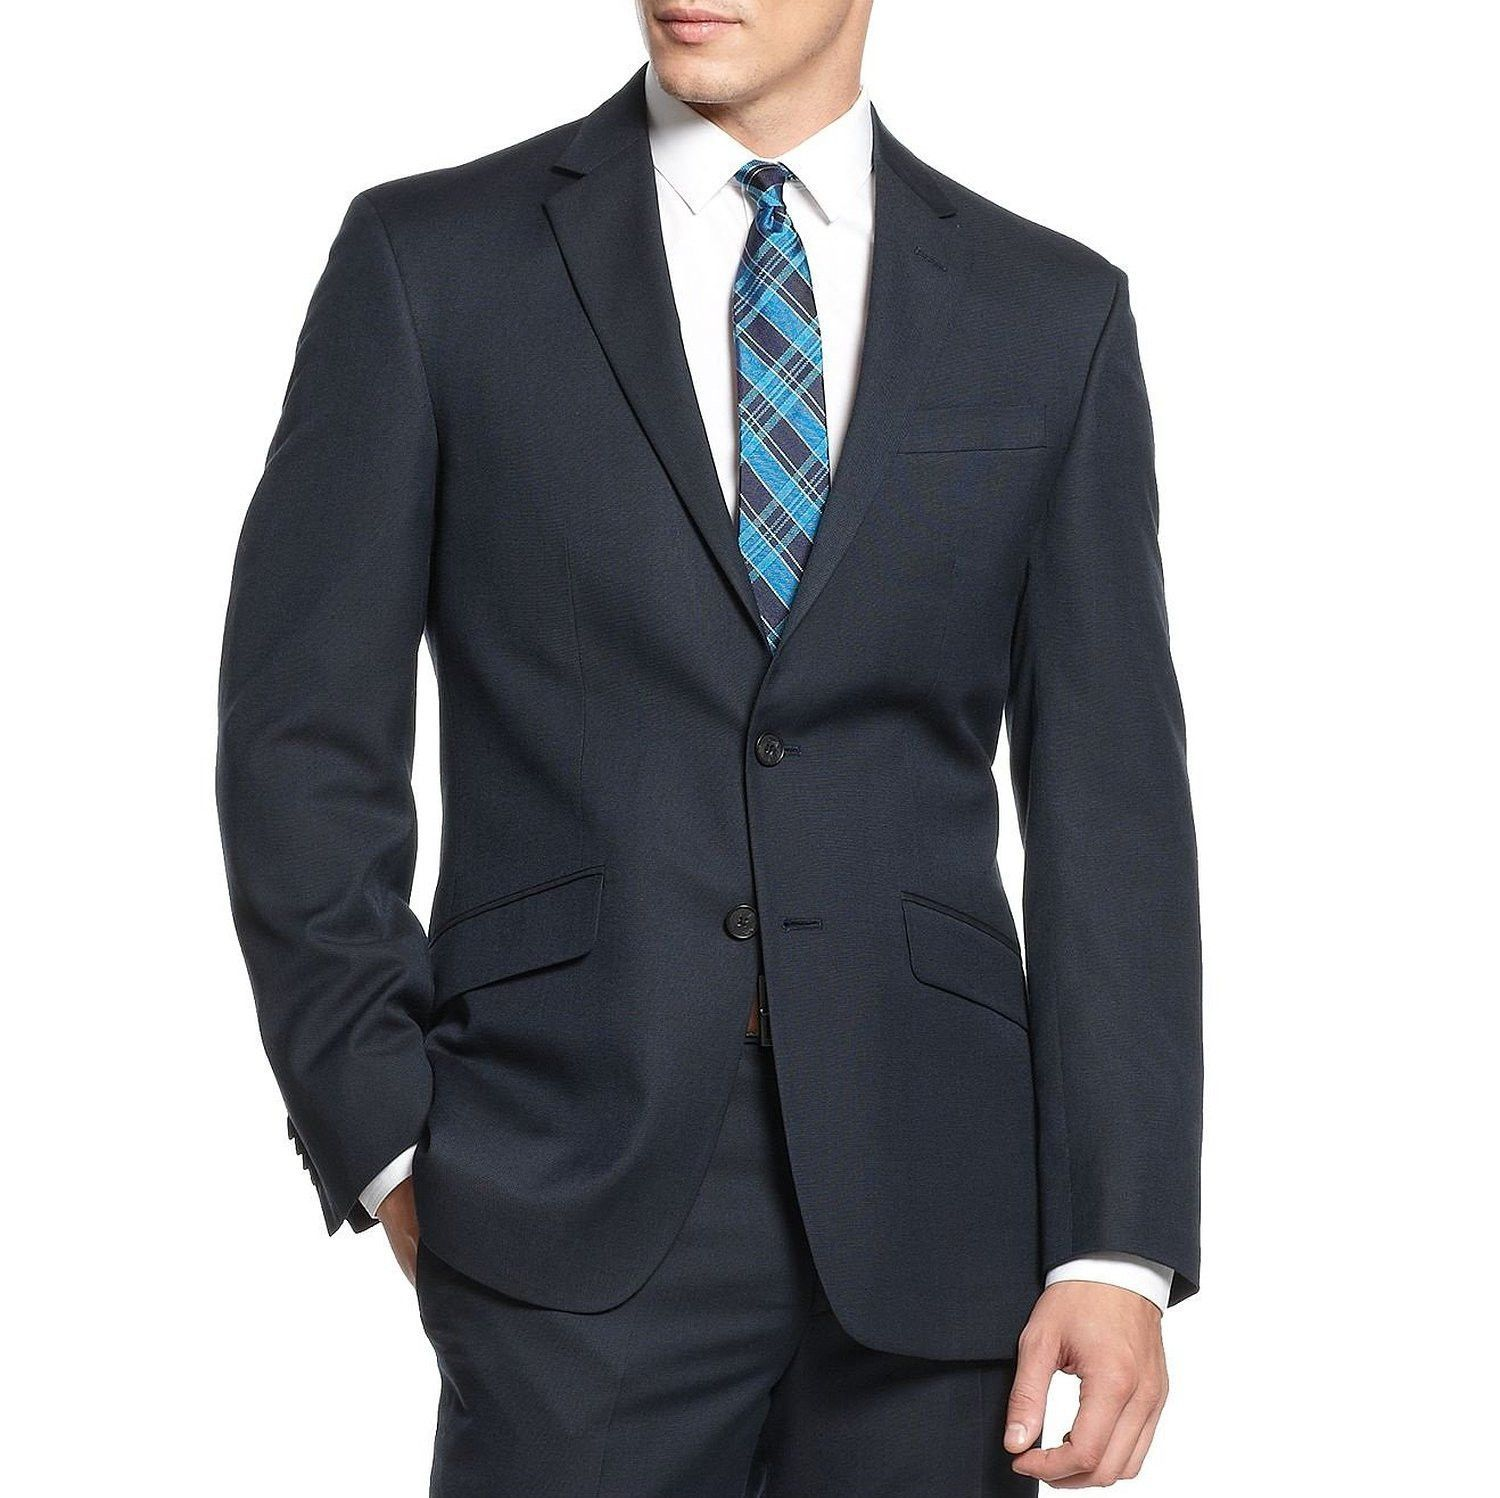 Kenneth Cole Unlisted Navy Pindot Two Button New Men's Blazer (42 Long)